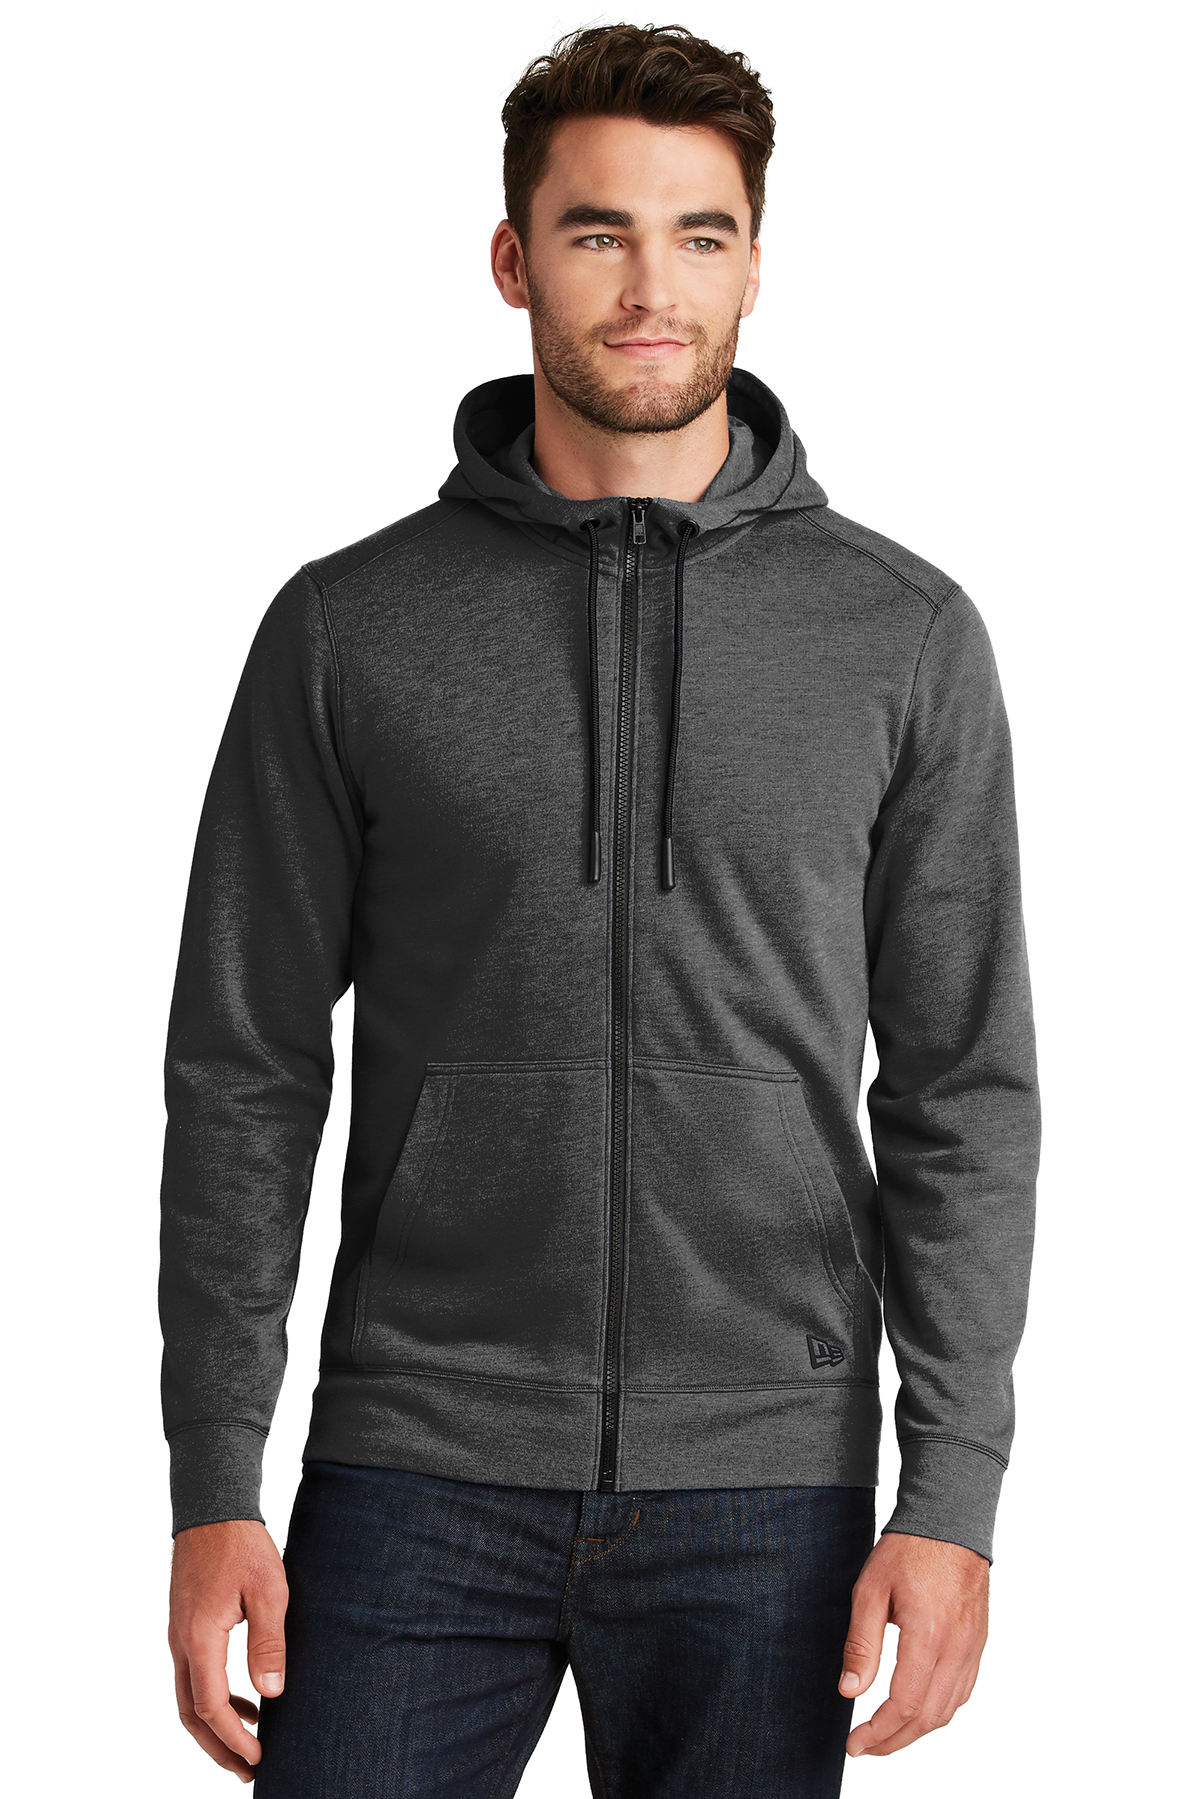 New Era NEA511 - Men's Tri-Blend Fleece Full Zip Hoodie